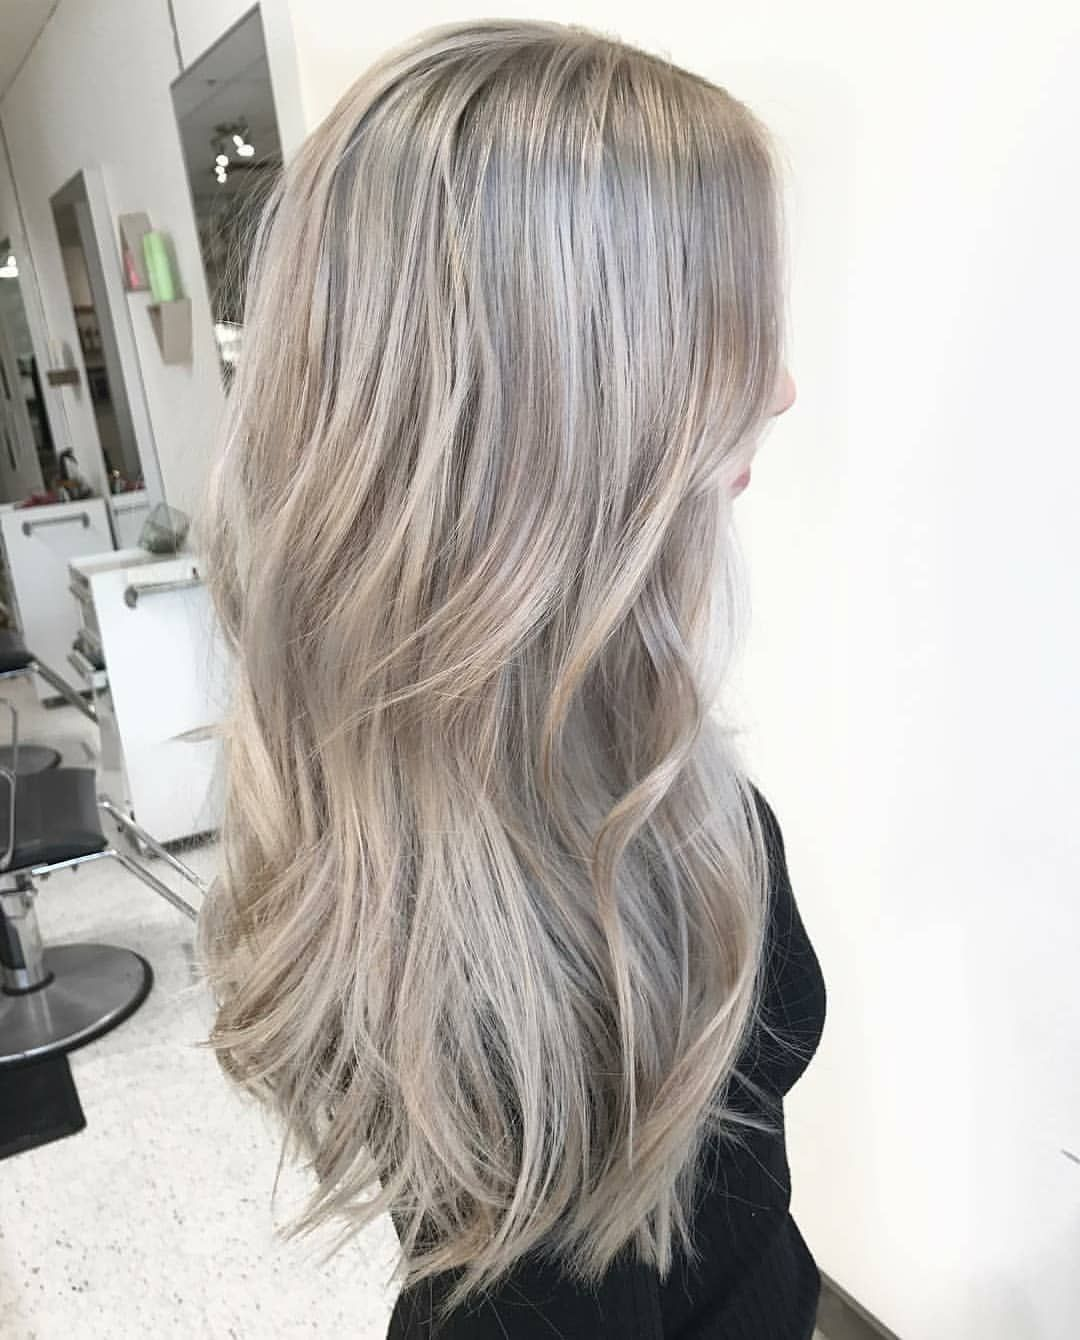 Pin by Shaelyn Savey on Hair Pinterest Ash blonde Ash and Blondes